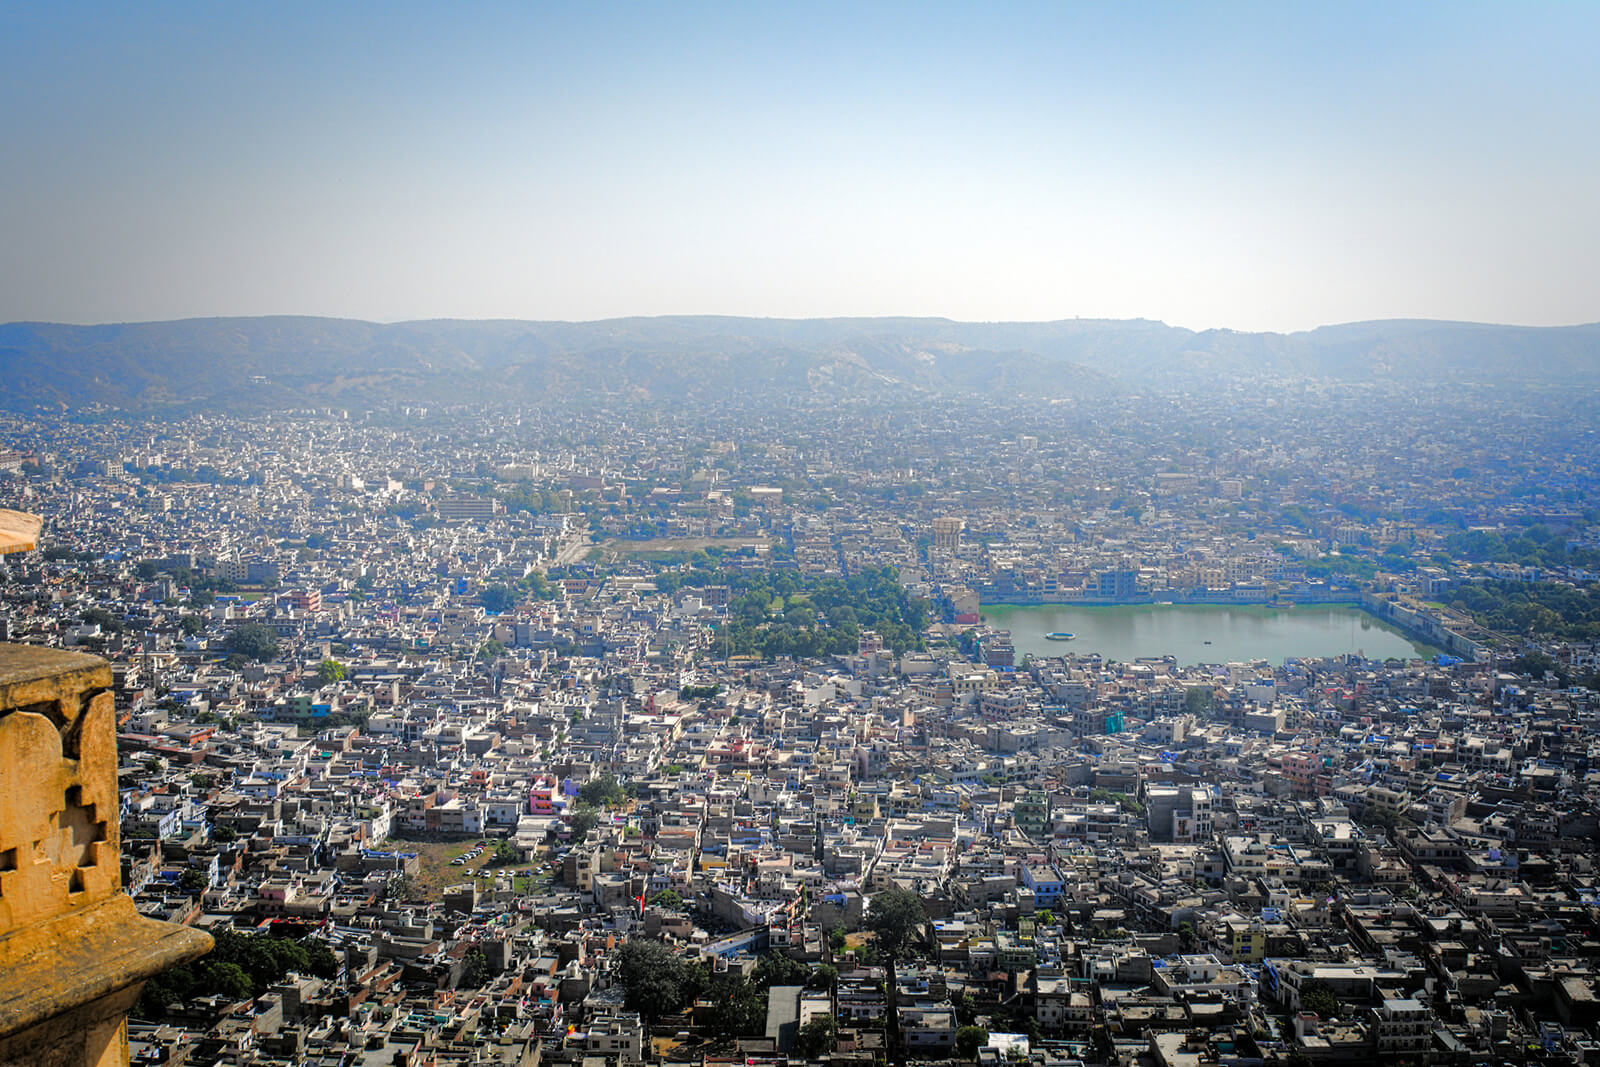 Enjoying the view from Nahargarh Fort is one of the obligatory things to do in Jaipur, India